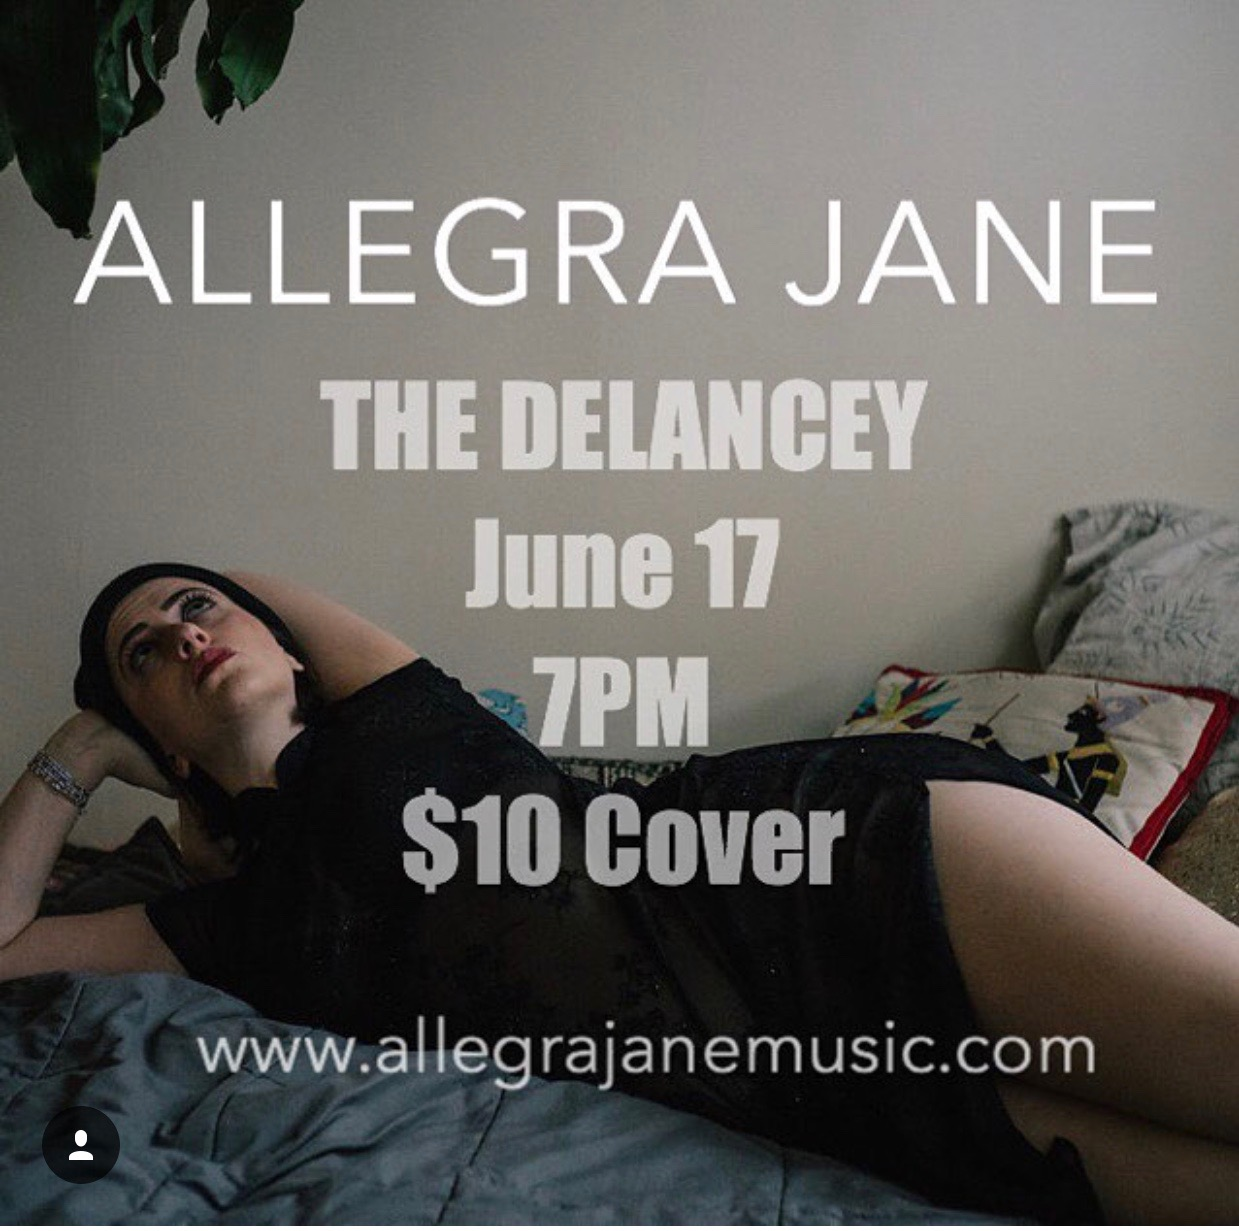 The Delancy - Allegra Jane performed an original set off her forthcoming EP